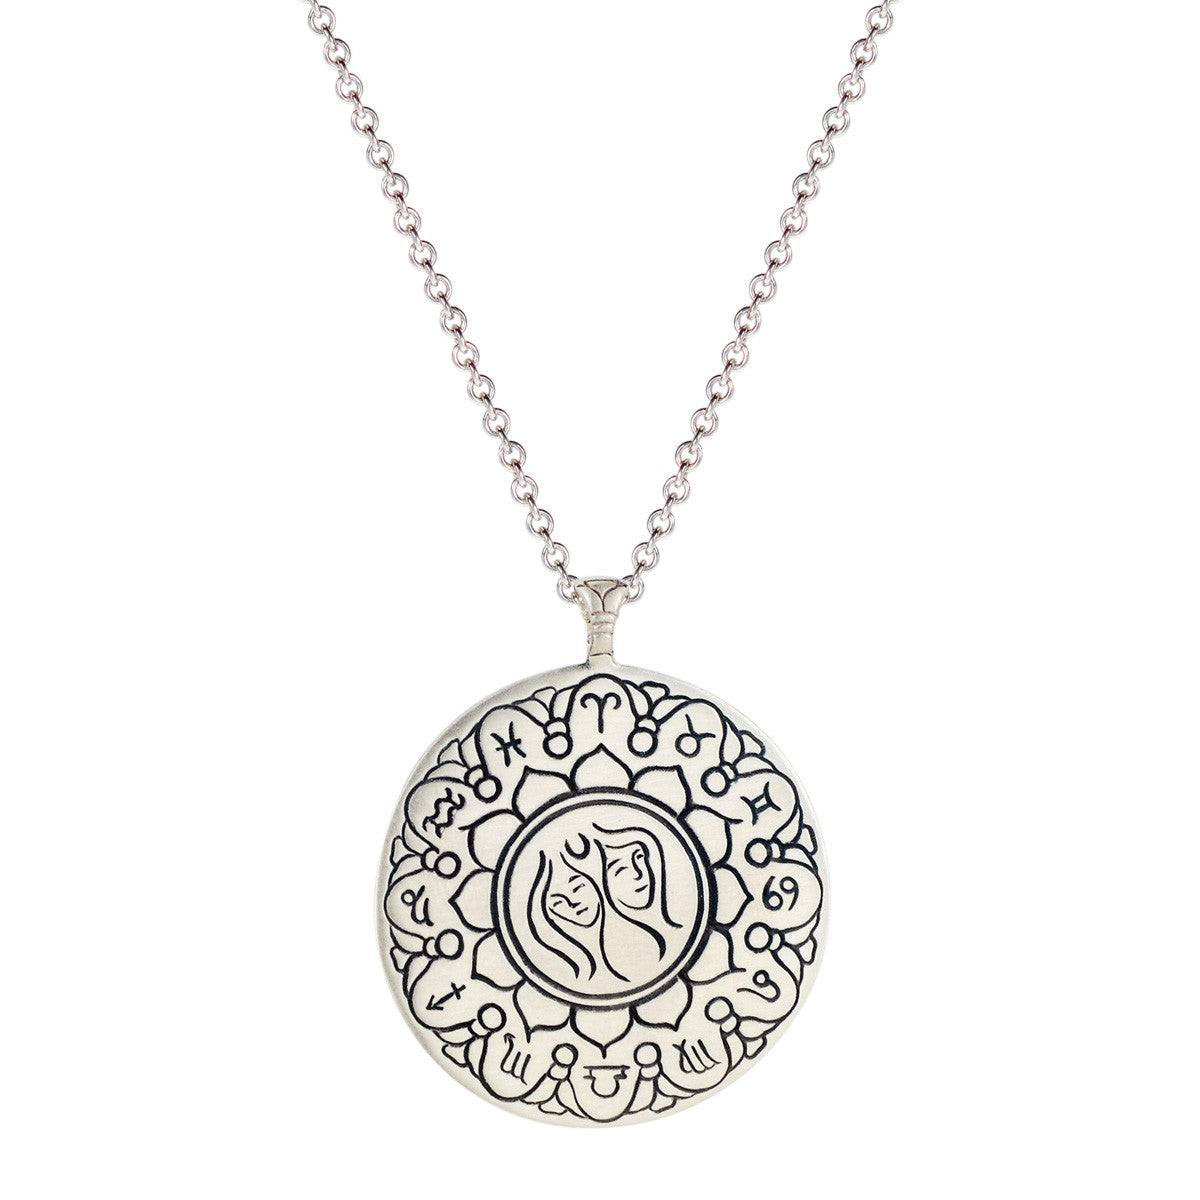 Sterling Silver Large Gemini Astrology Pendant